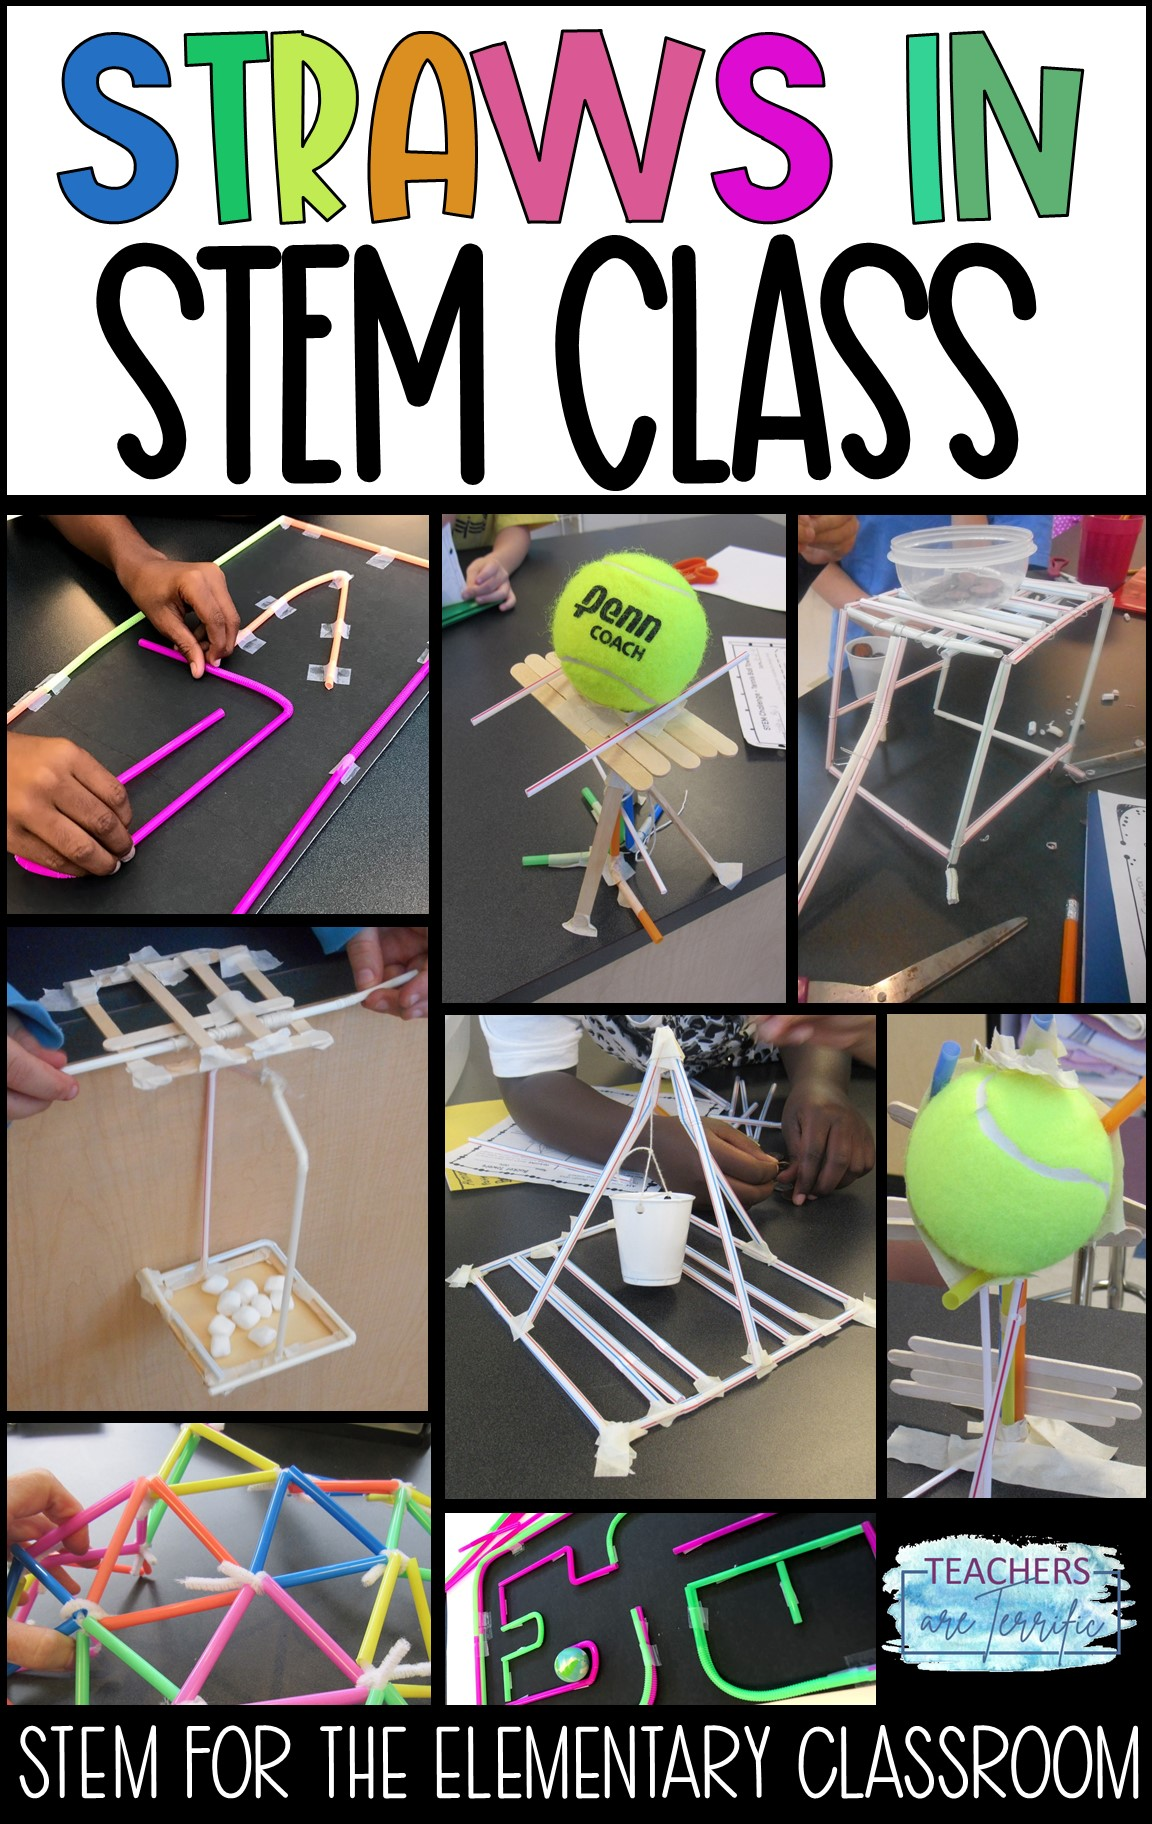 Straws in STEM Class- see six STEM projects that all use straws. This includes Bucket Towers, Geodesic Dome, Tennis Ball Towers, Rescue Devices, and more!